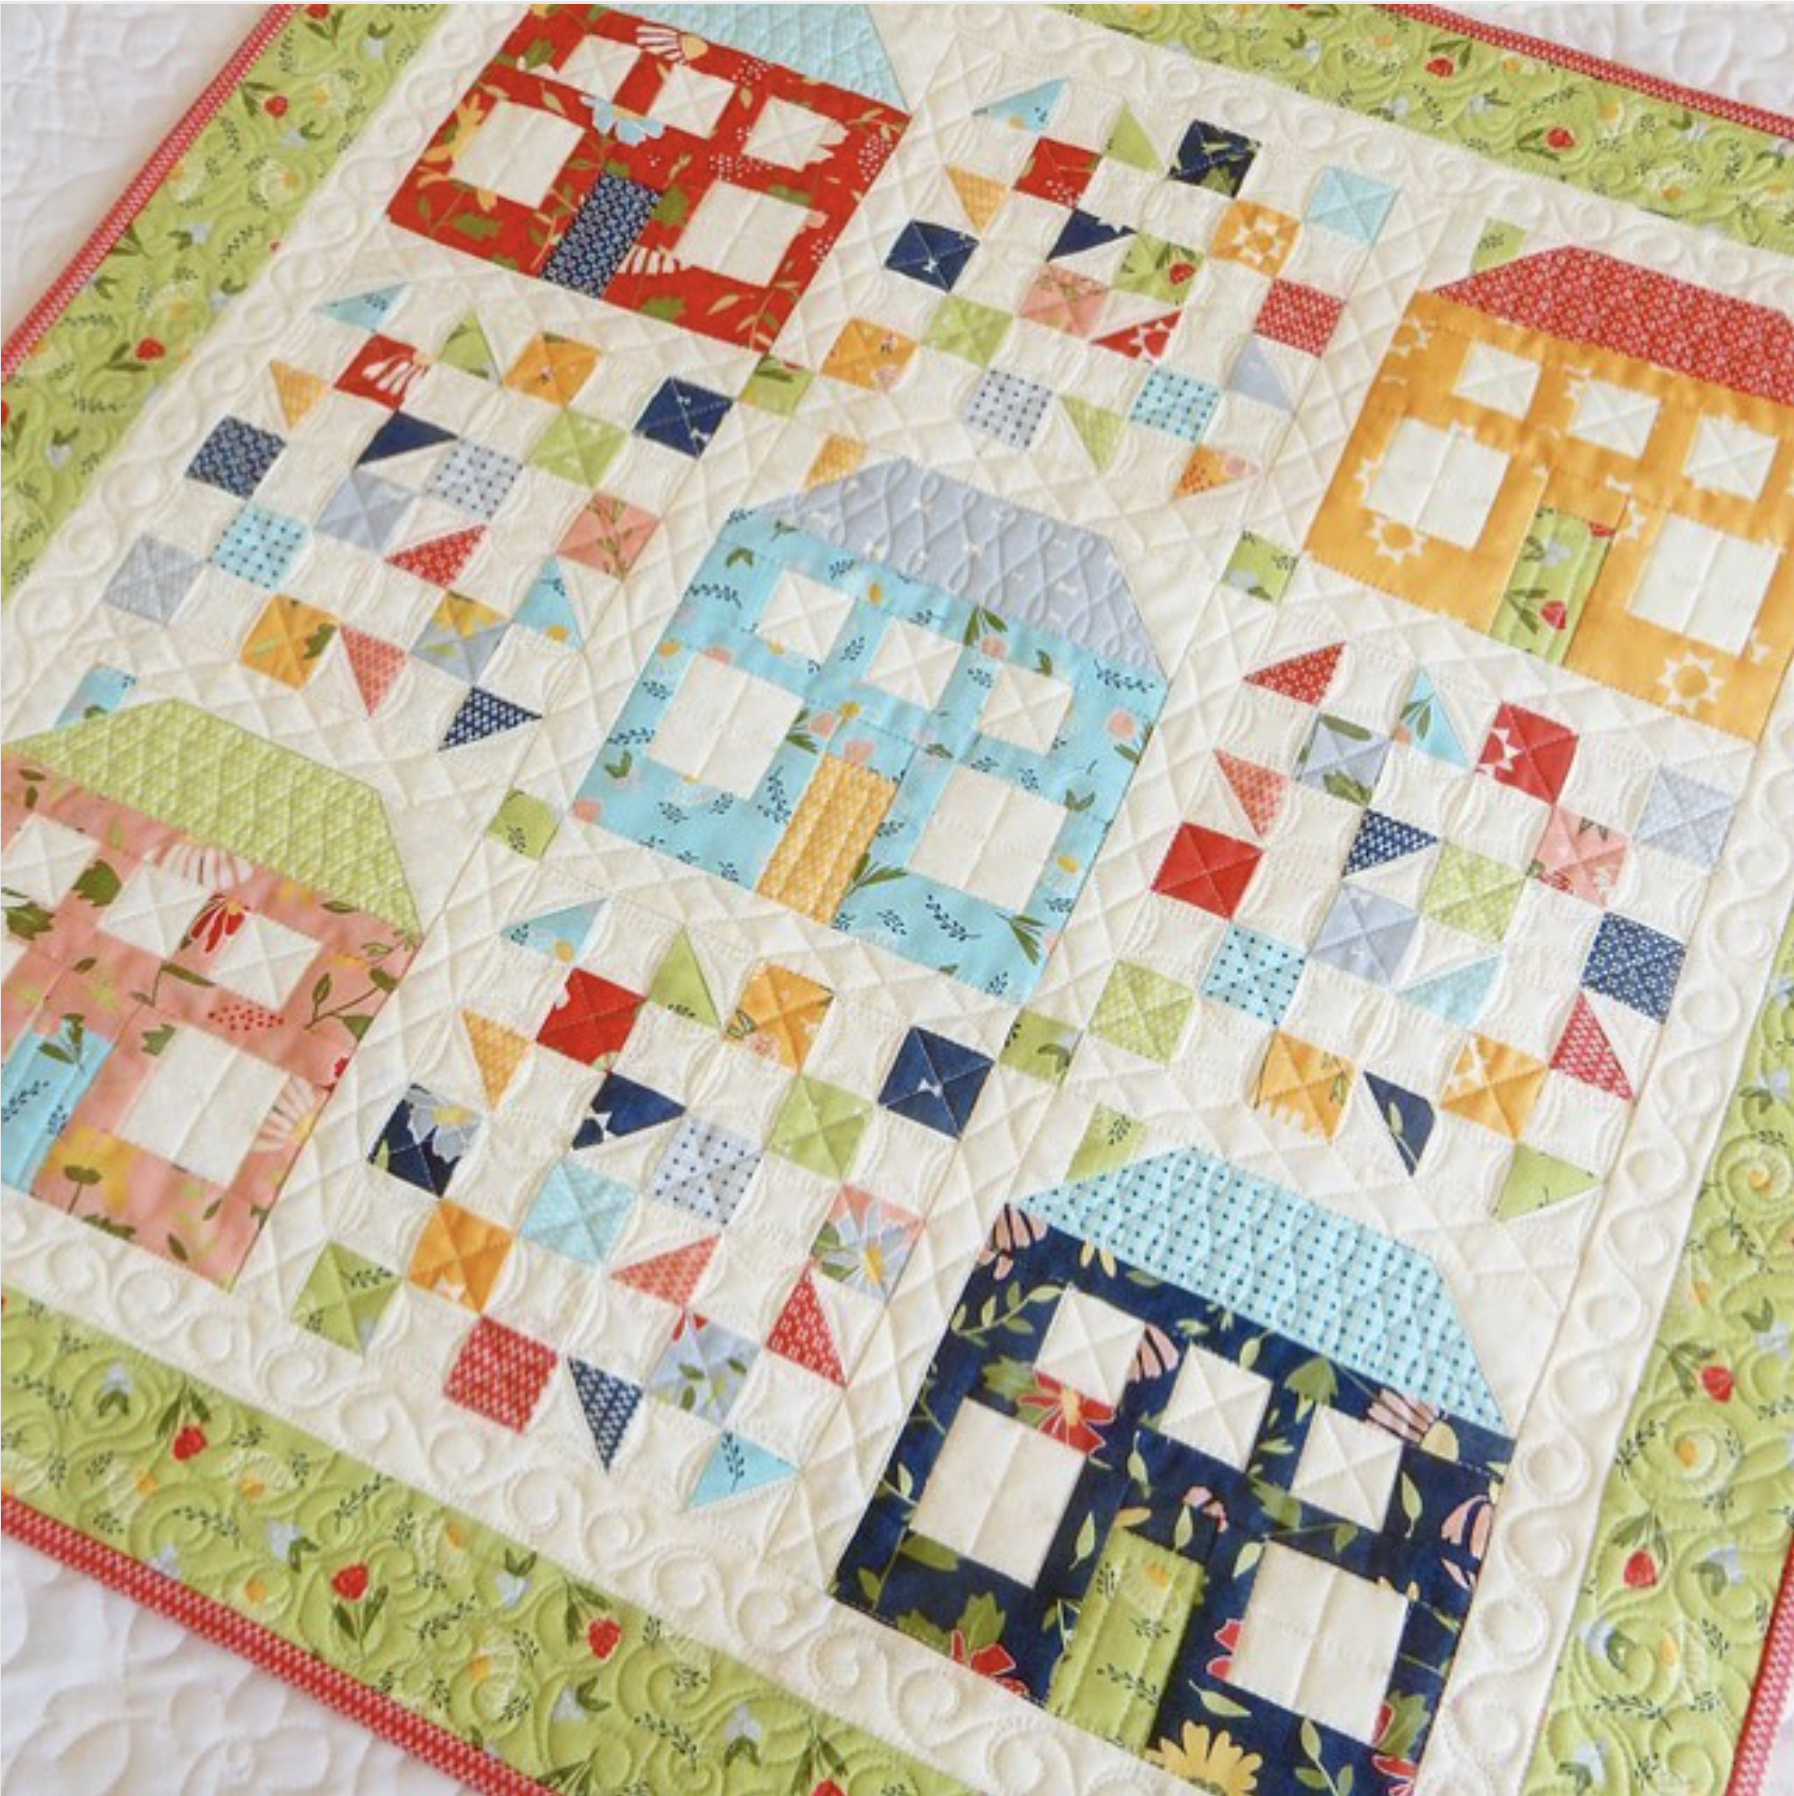 Sherri McConnell's Be My Neighbor quilt pattern, available at her Etsy Shop